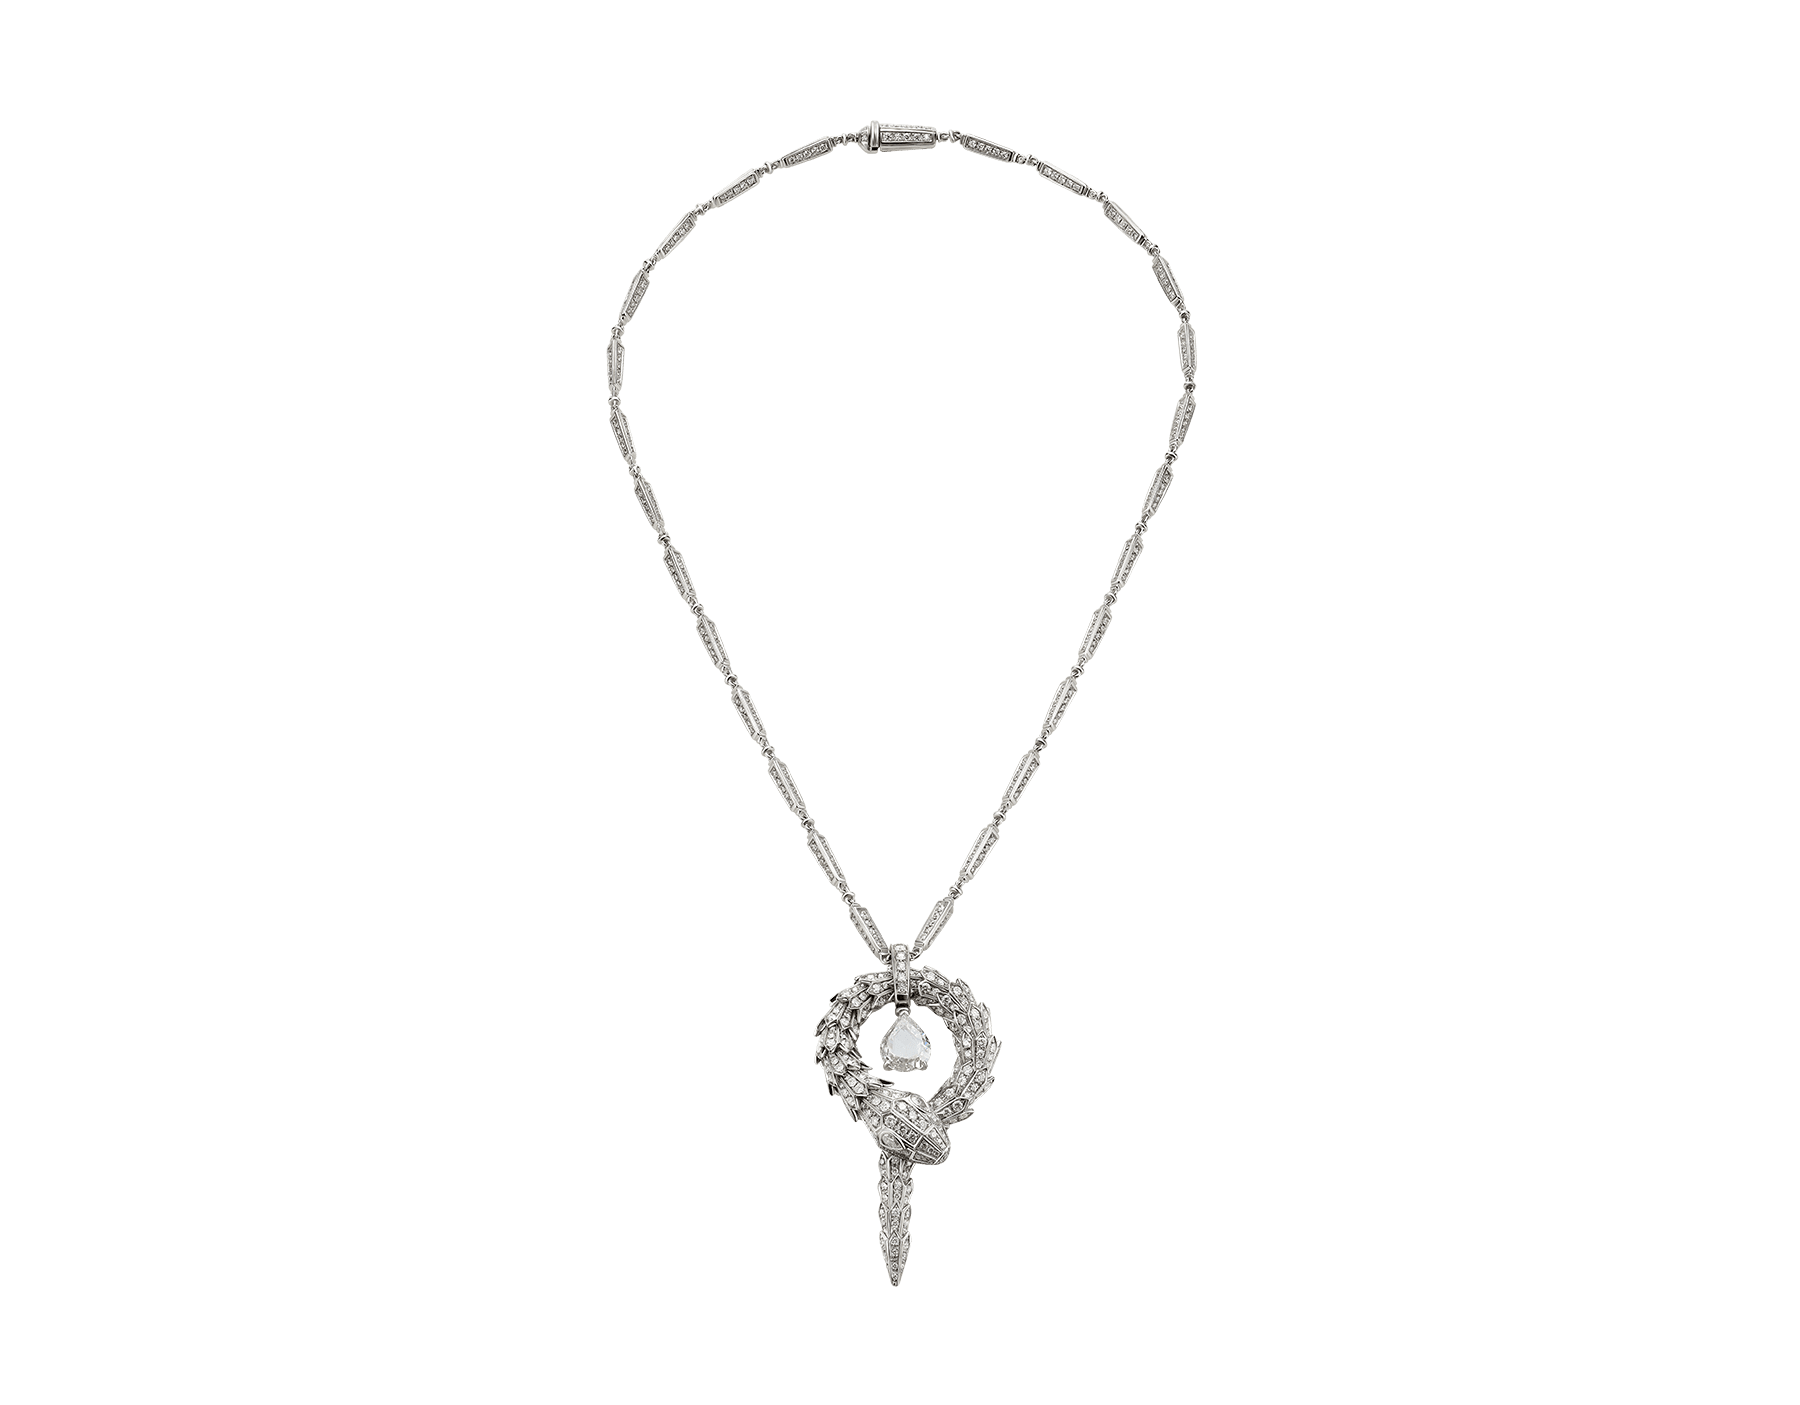 Serpenti small pendant in 18 kt white gold with central diamond and pavé diamonds. 354088 image 1